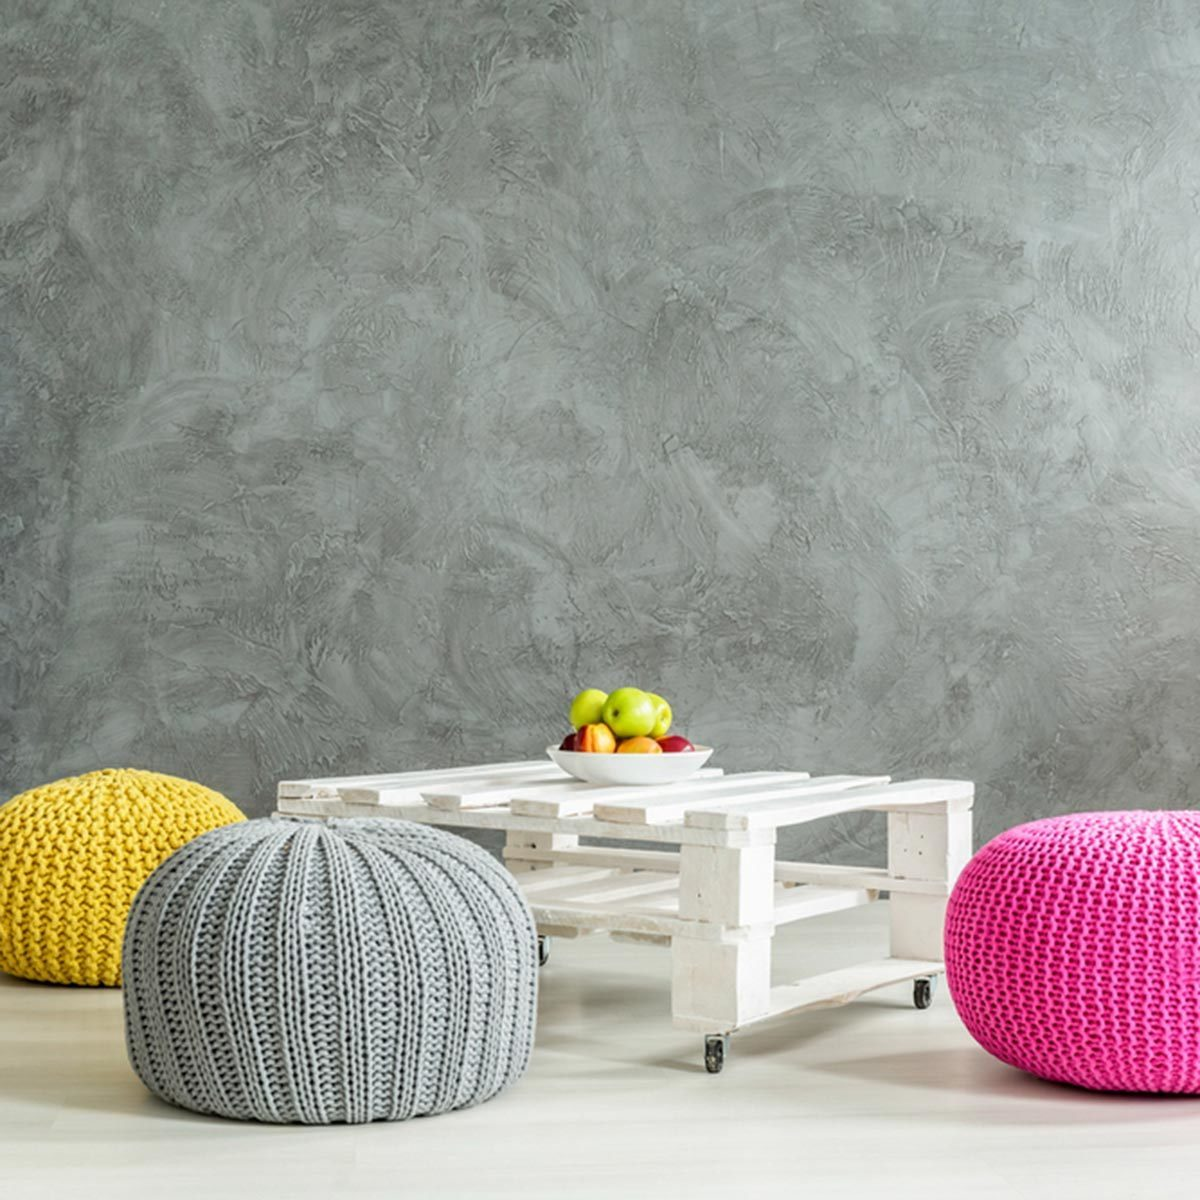 Replace Floor Pillows with Poufs